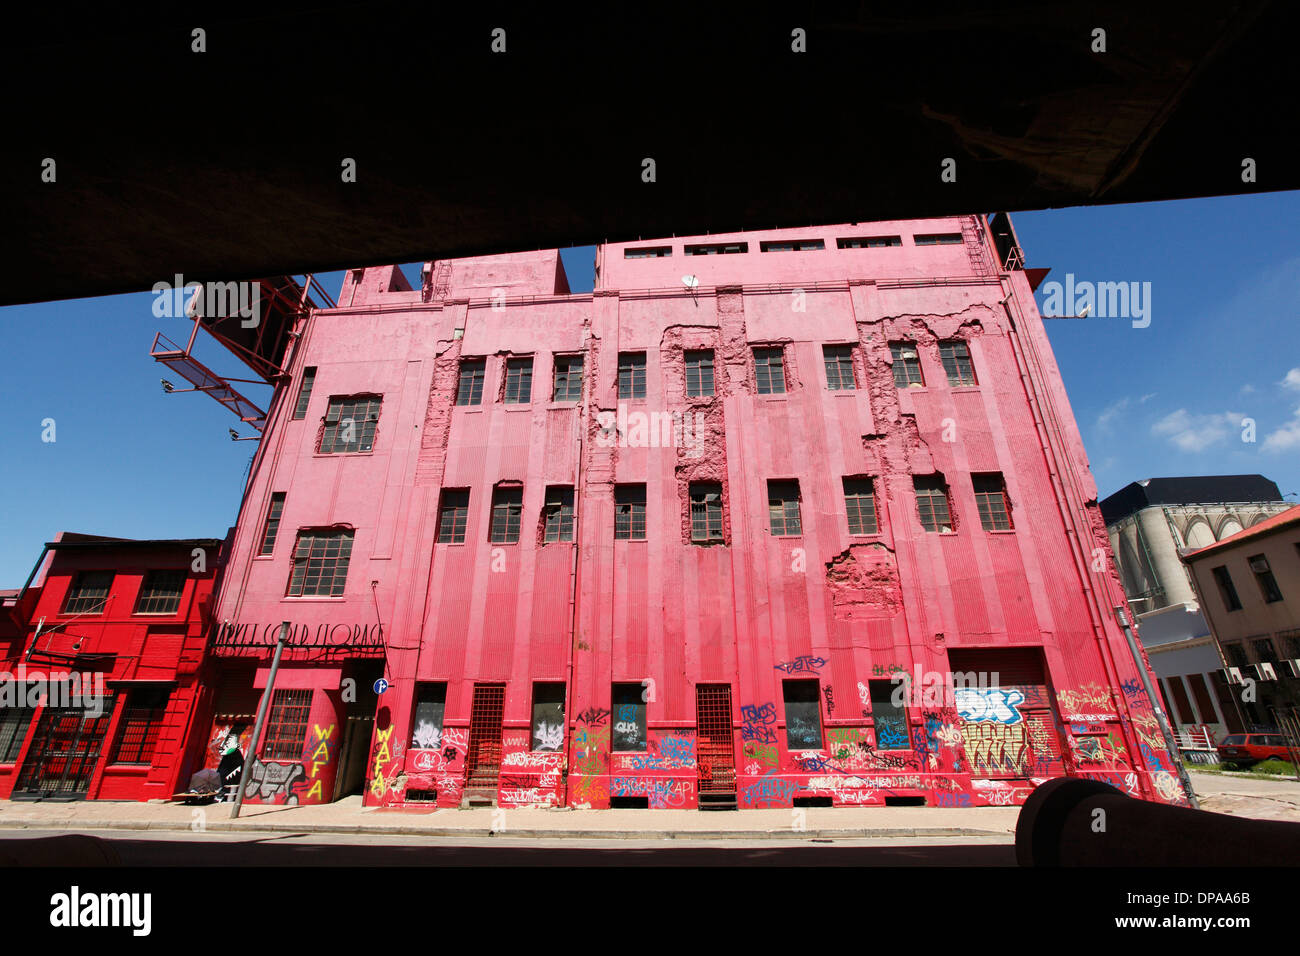 The Market Cold Store building in Newtown in central Johannesburg